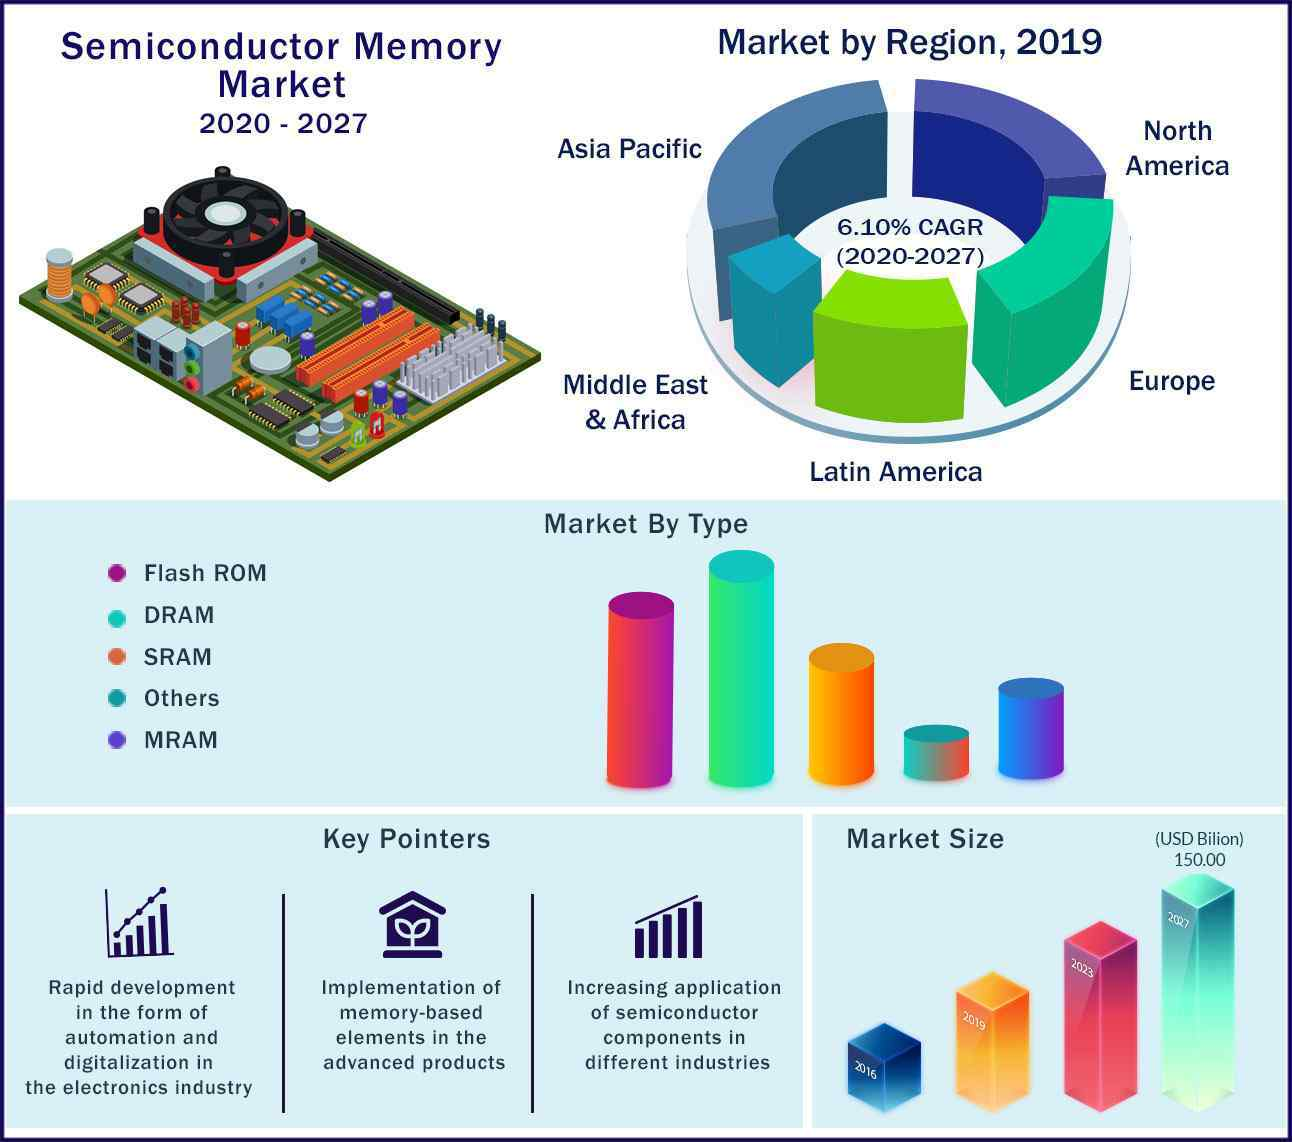 Global Semiconductor Memory Market 2020 to 2027